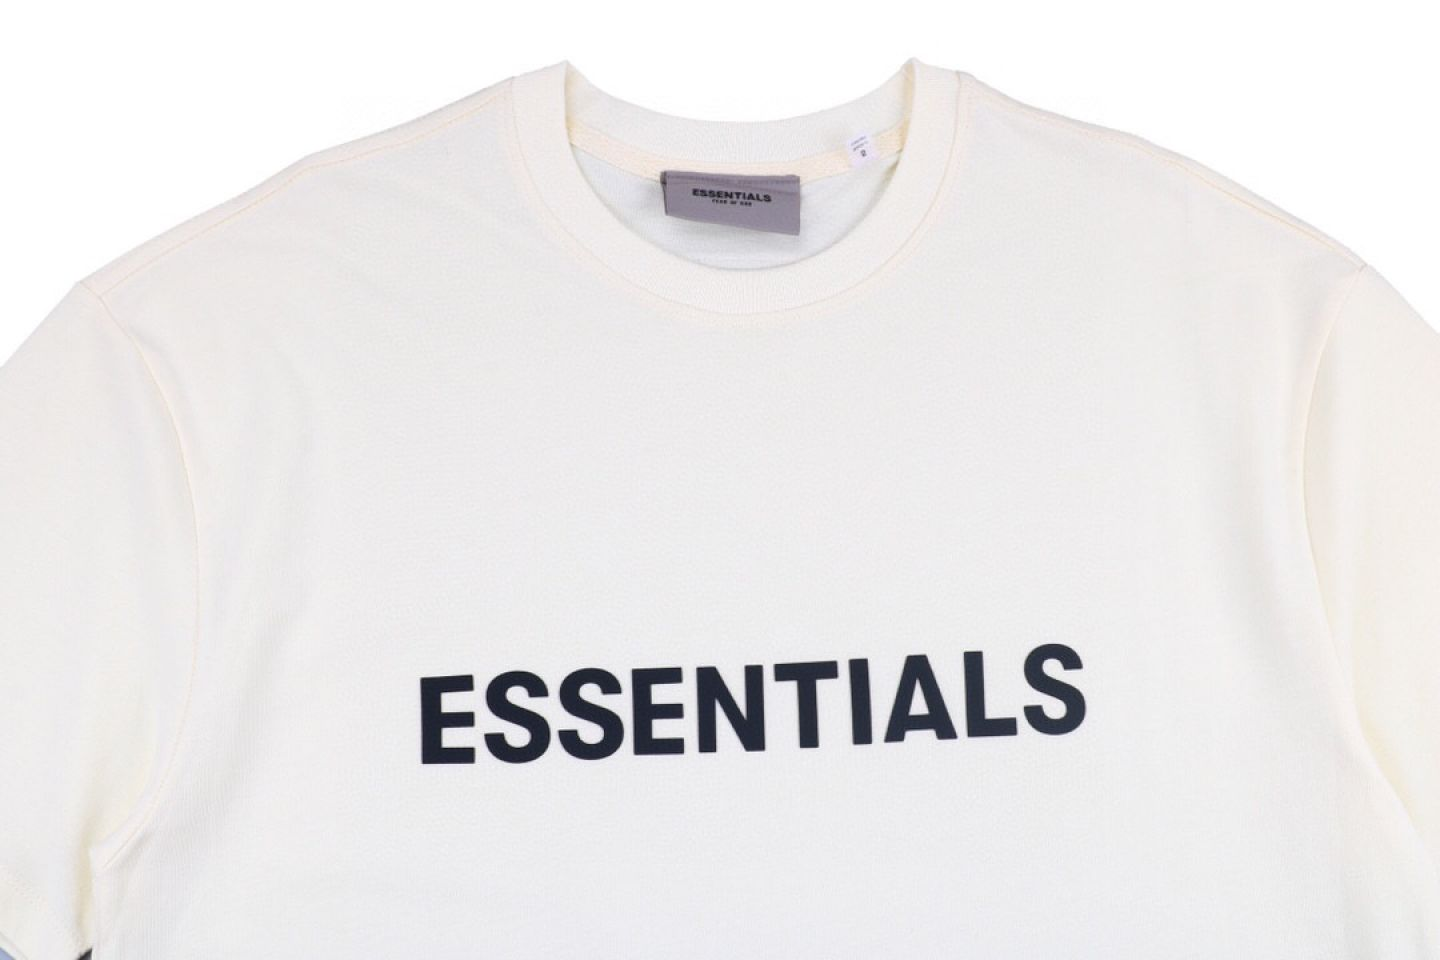 """Shirt Fear Of God ss20 ESSENTIALS double-line chest letter short-sleeved T-shirt """"White"""" 2 fear_of_god_ss20_essentials_double_line_chest_letter_short_sleeved_t_shirt_white_2"""